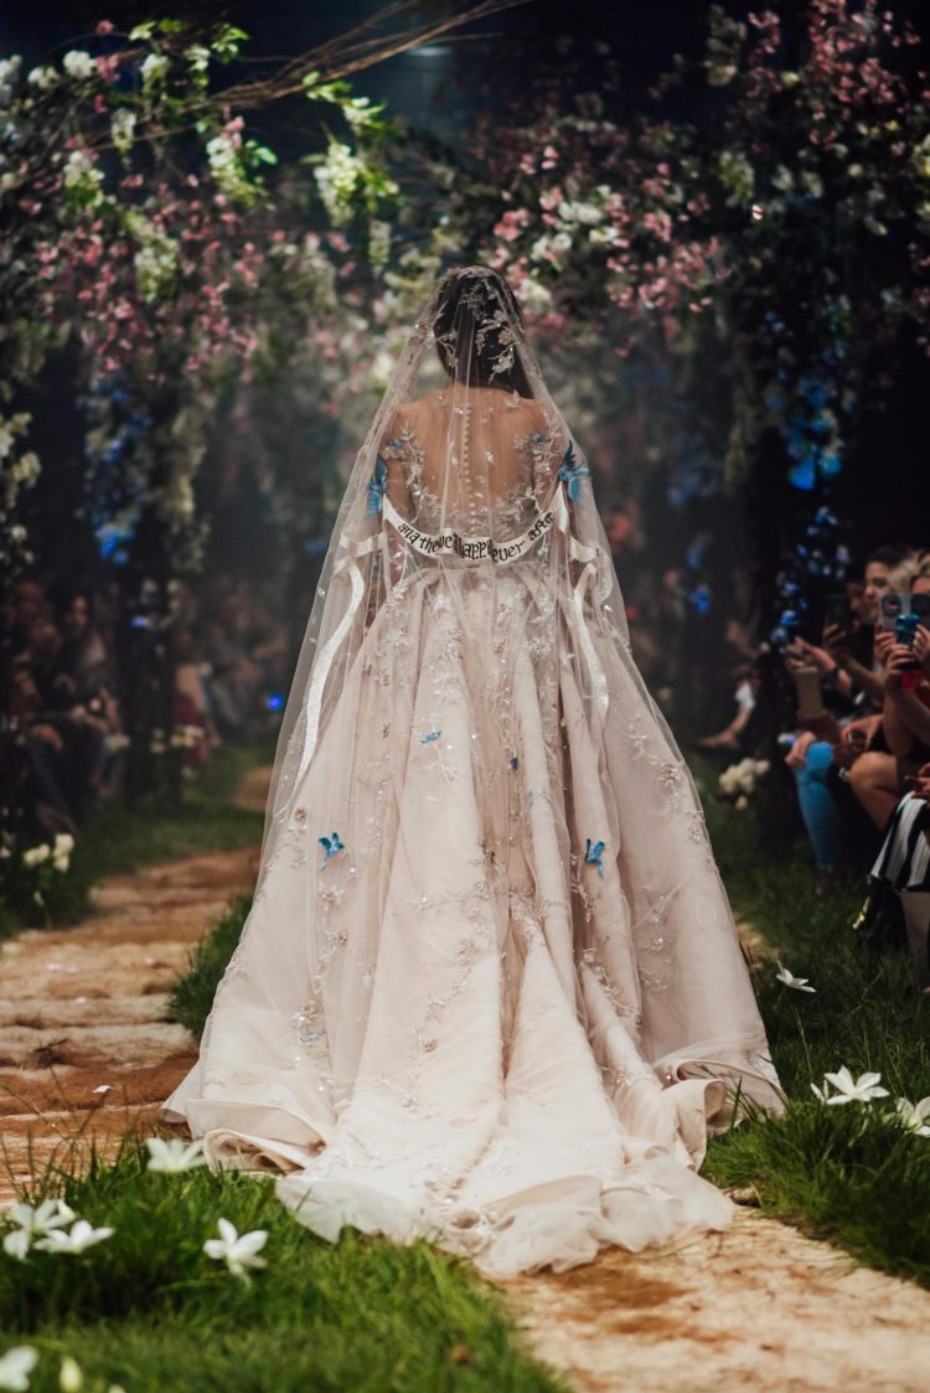 Fairy Wedding Dress